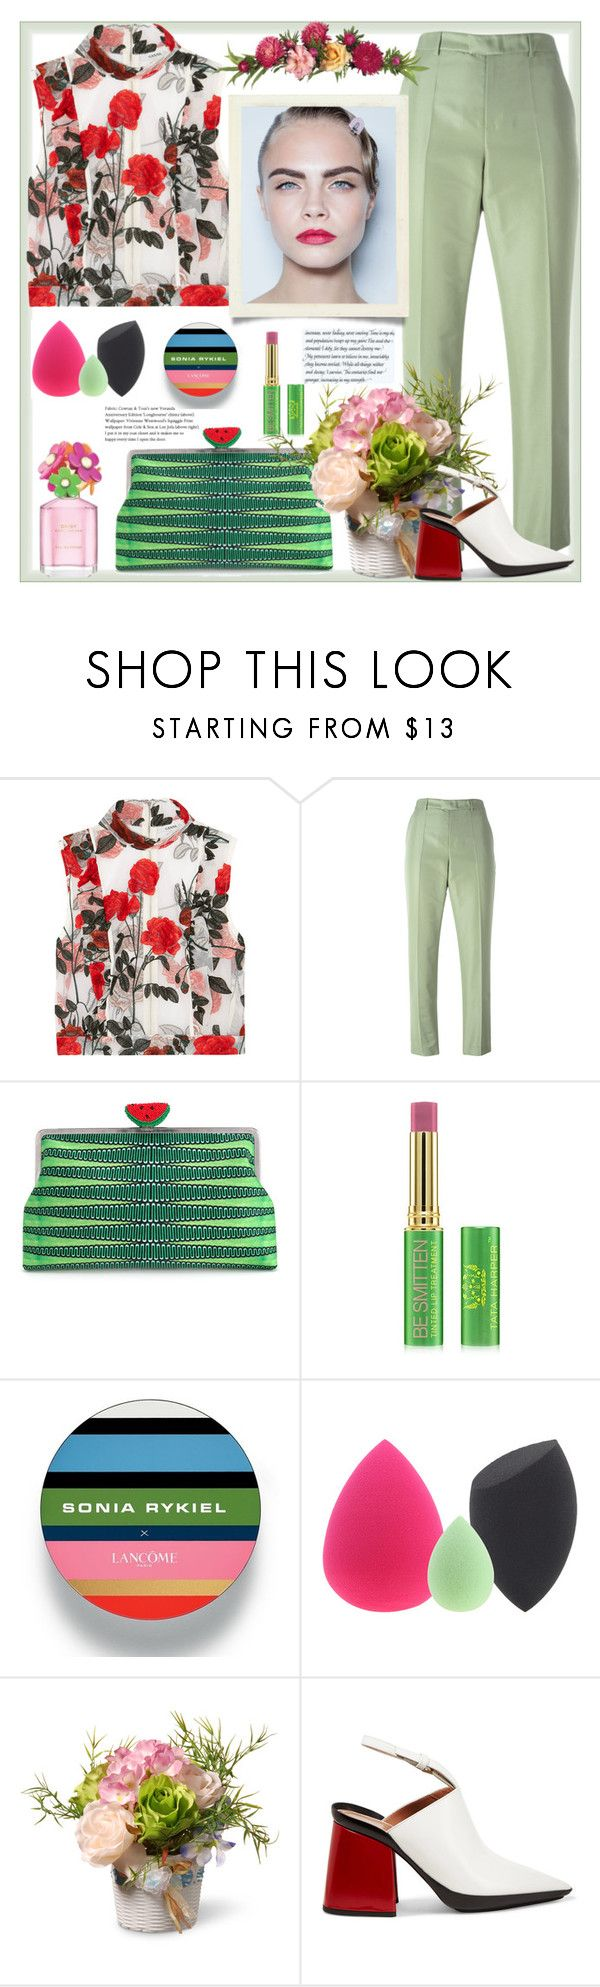 """Colourful set"" by natalyapril1976 ❤ liked on Polyvore featuring Ganni, RED Valentino, Sarah's Bag, Tata Harper, Lancôme, Marc Jacobs, National Tree Company and Marni"